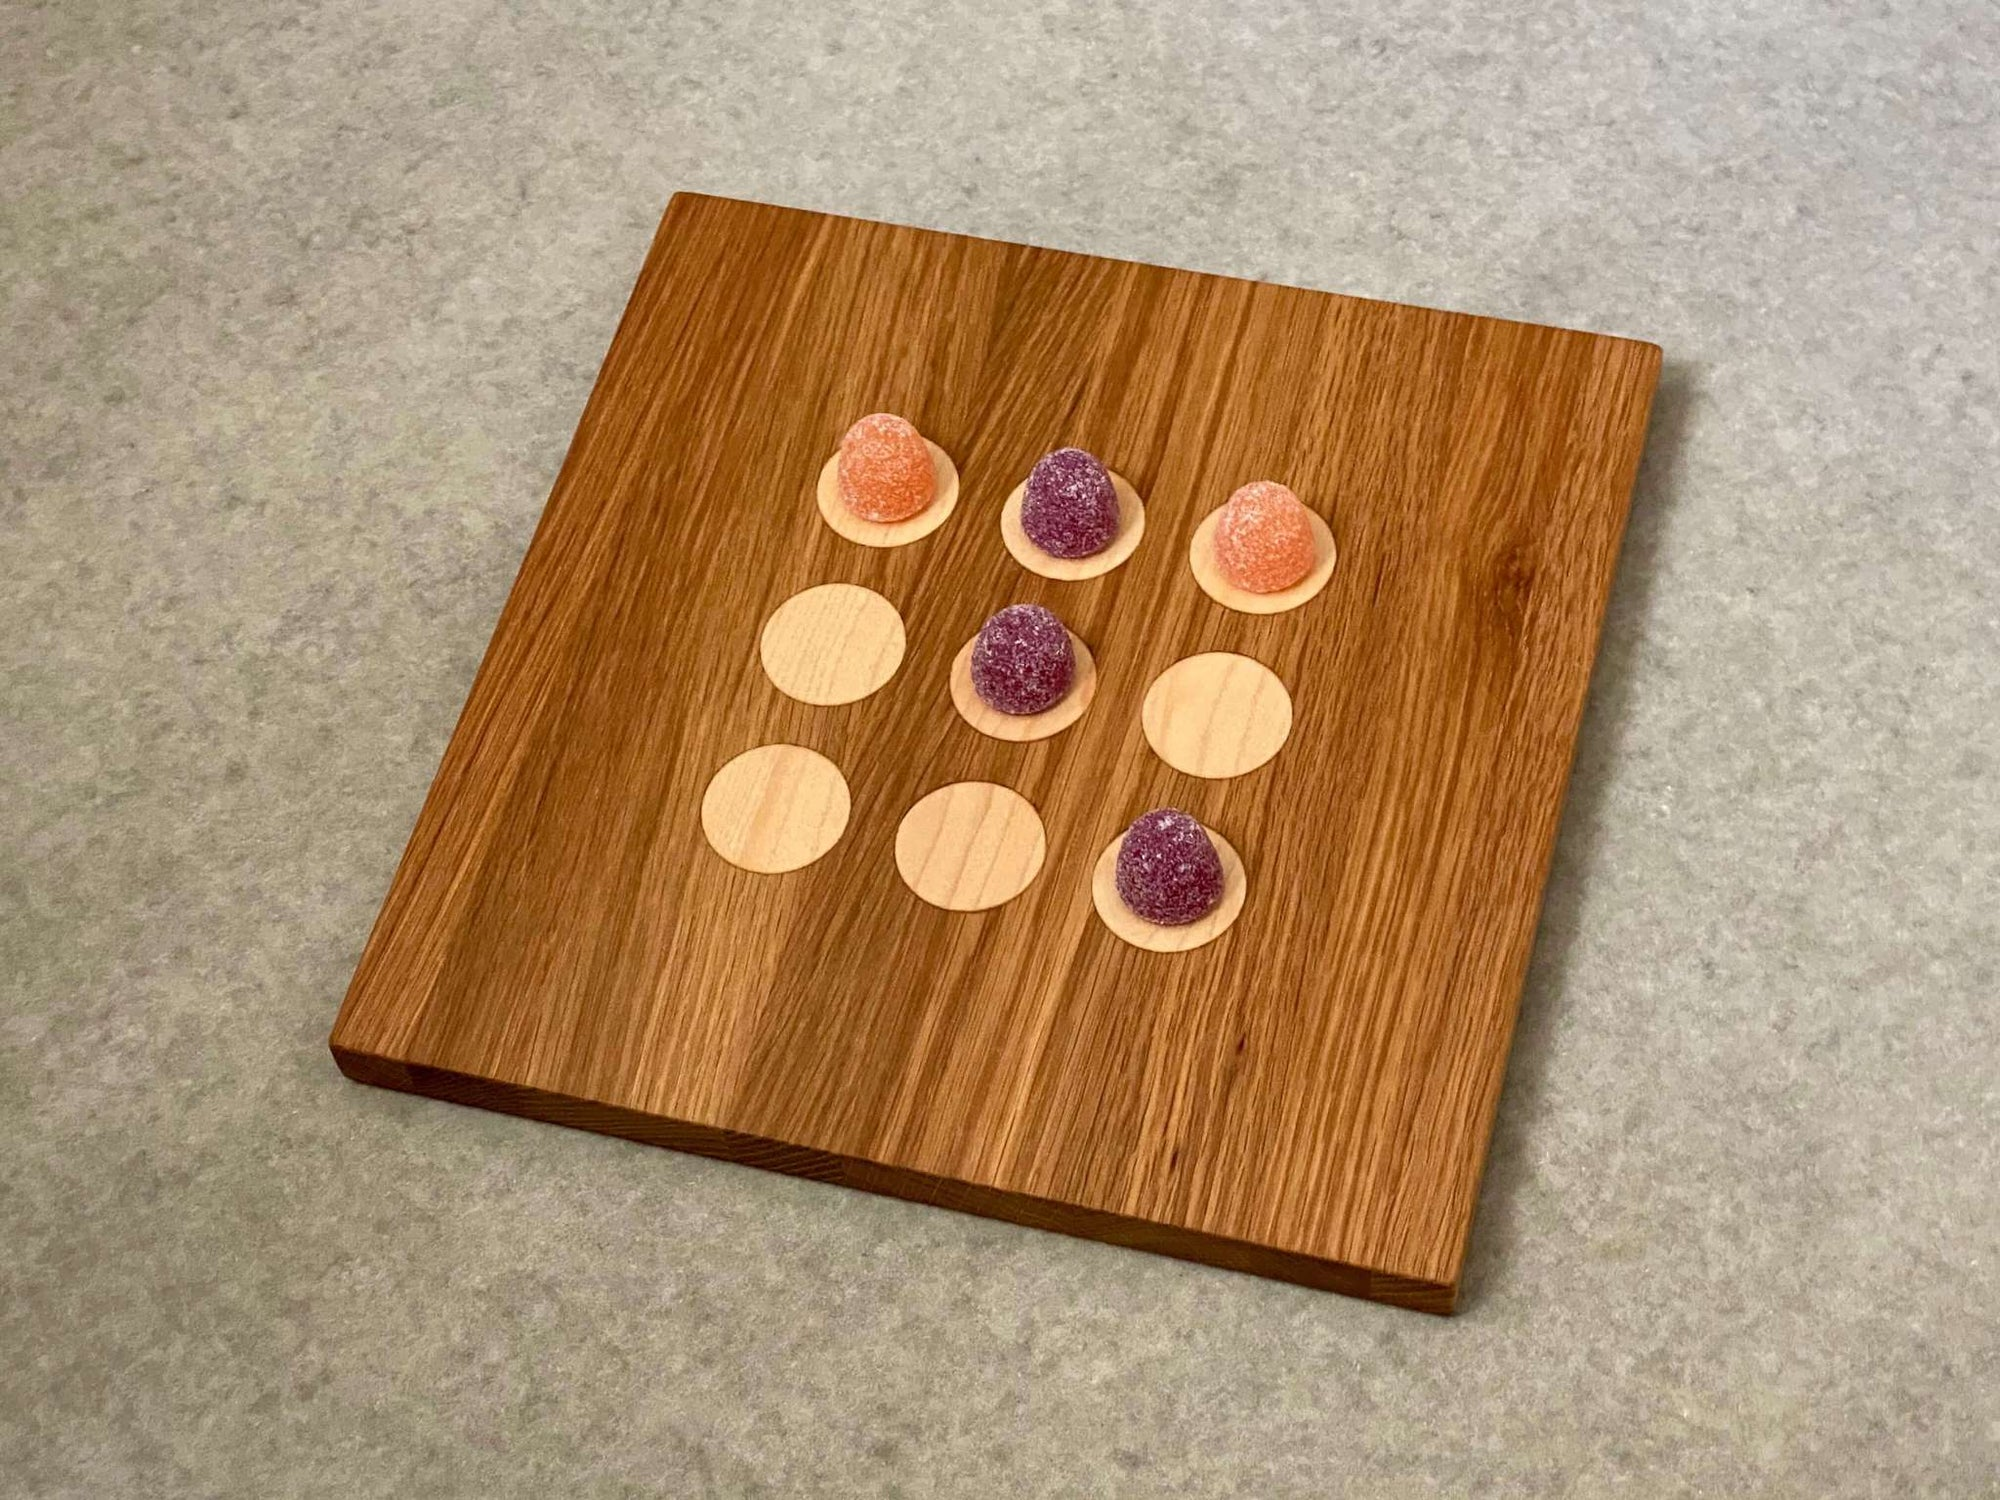 Square cutting and serving board in white oak with 9 inlaid maple dots like tic tac toe.